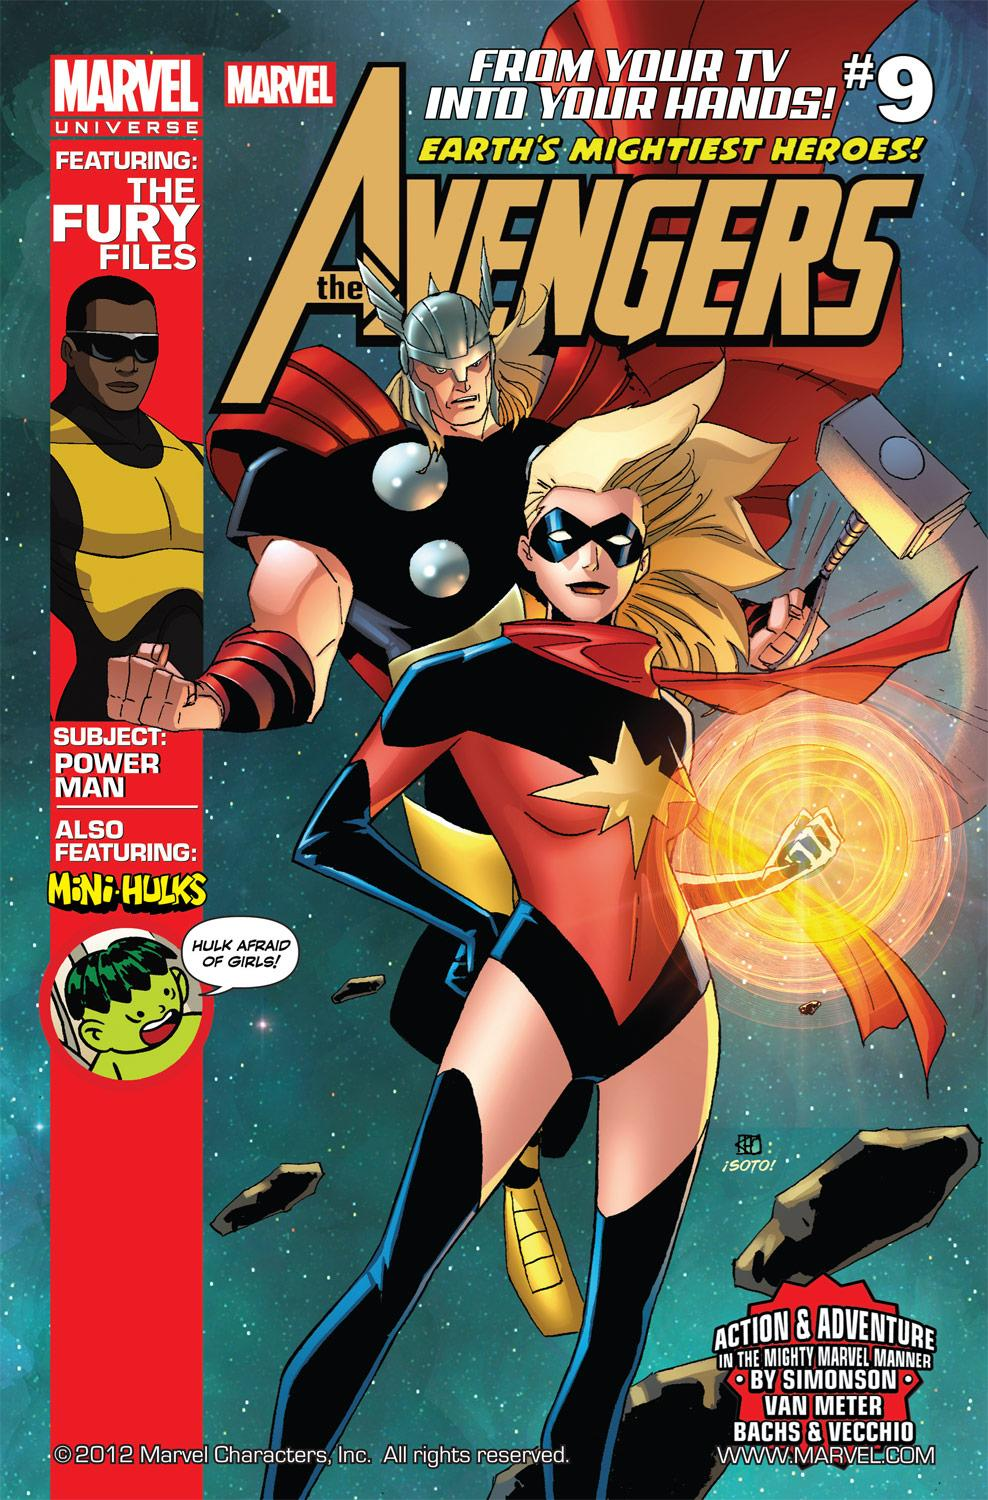 Marvel Universe Avengers: Earth's Mightiest Heroes (2012) #9